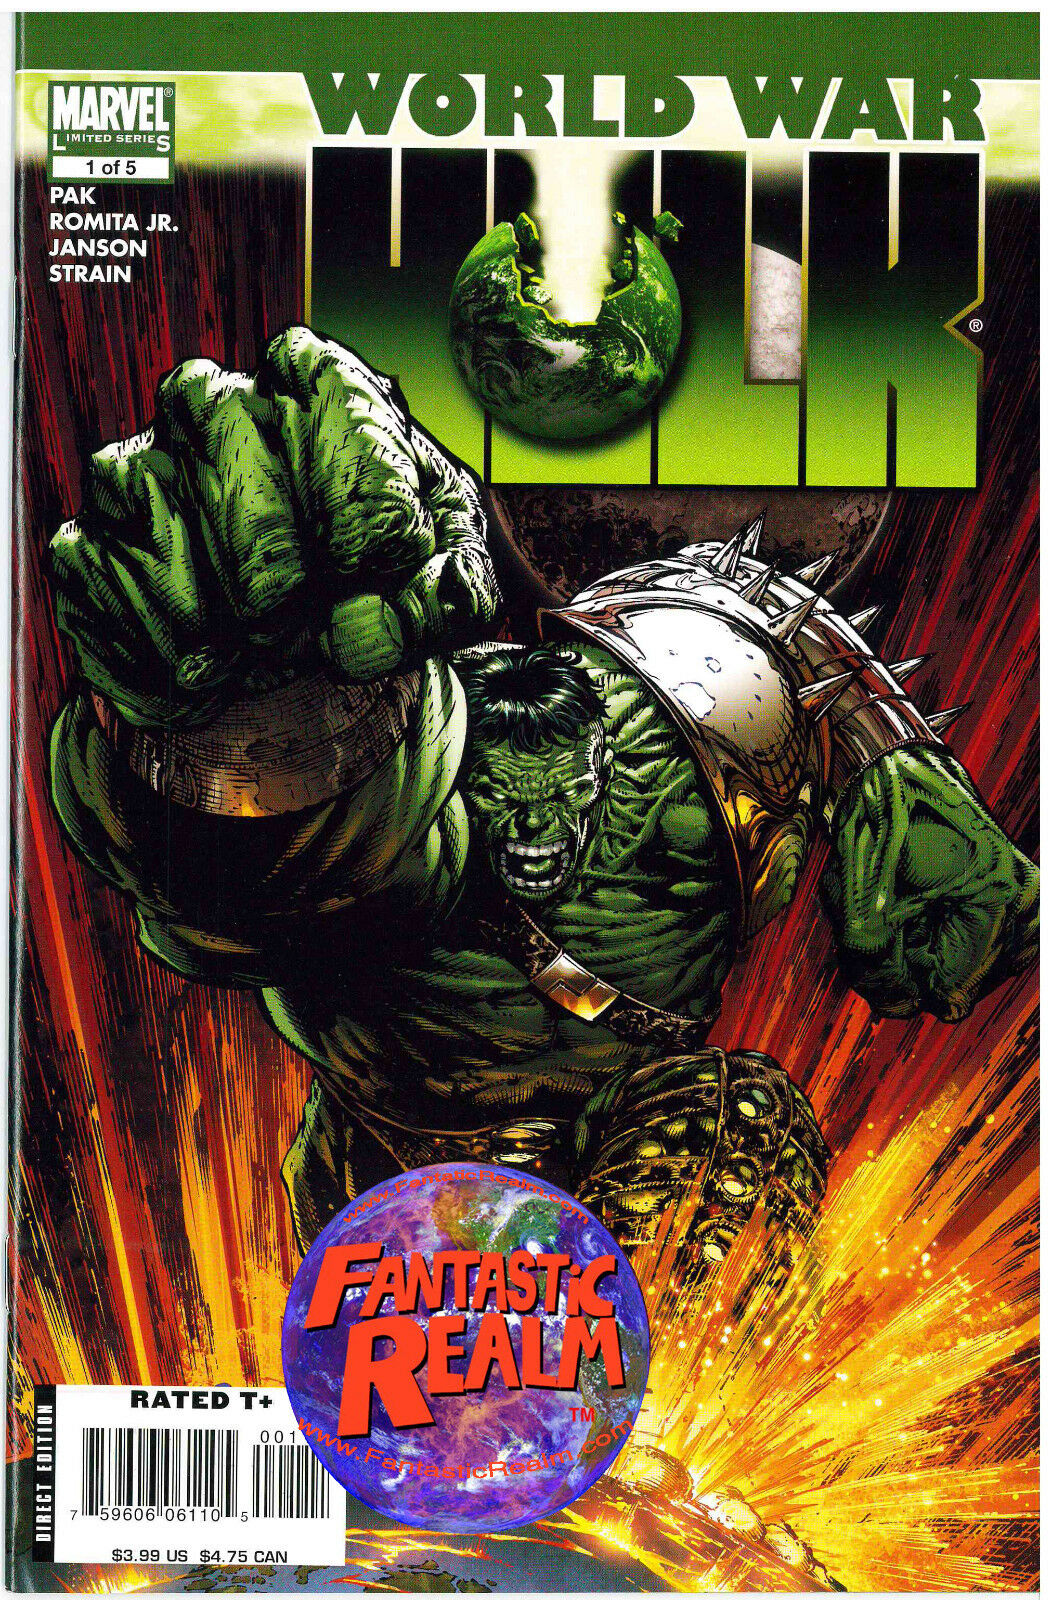 WORLD WAR HULK #1, 2, 3, 4 & 5A (FULL SET) (2007) MARVEL COMICS